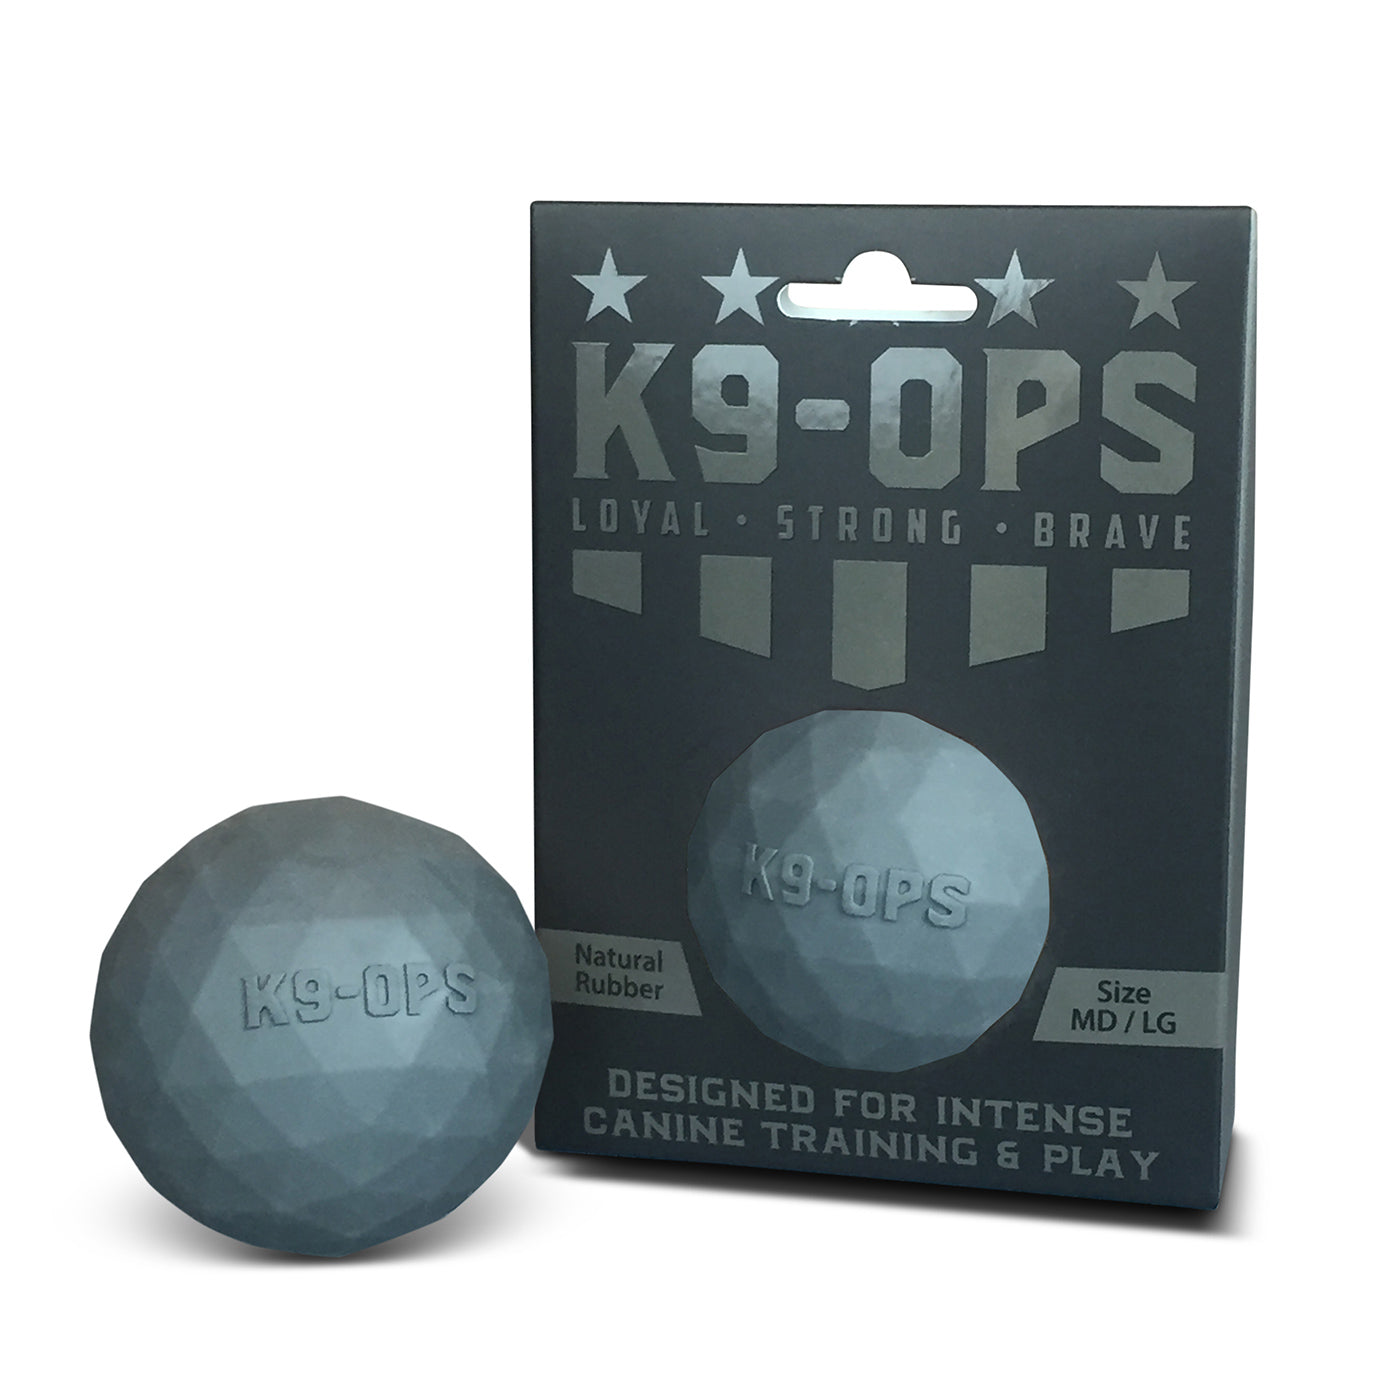 Police training dog balls designed to be the most durable dog ball for K9 and K-9